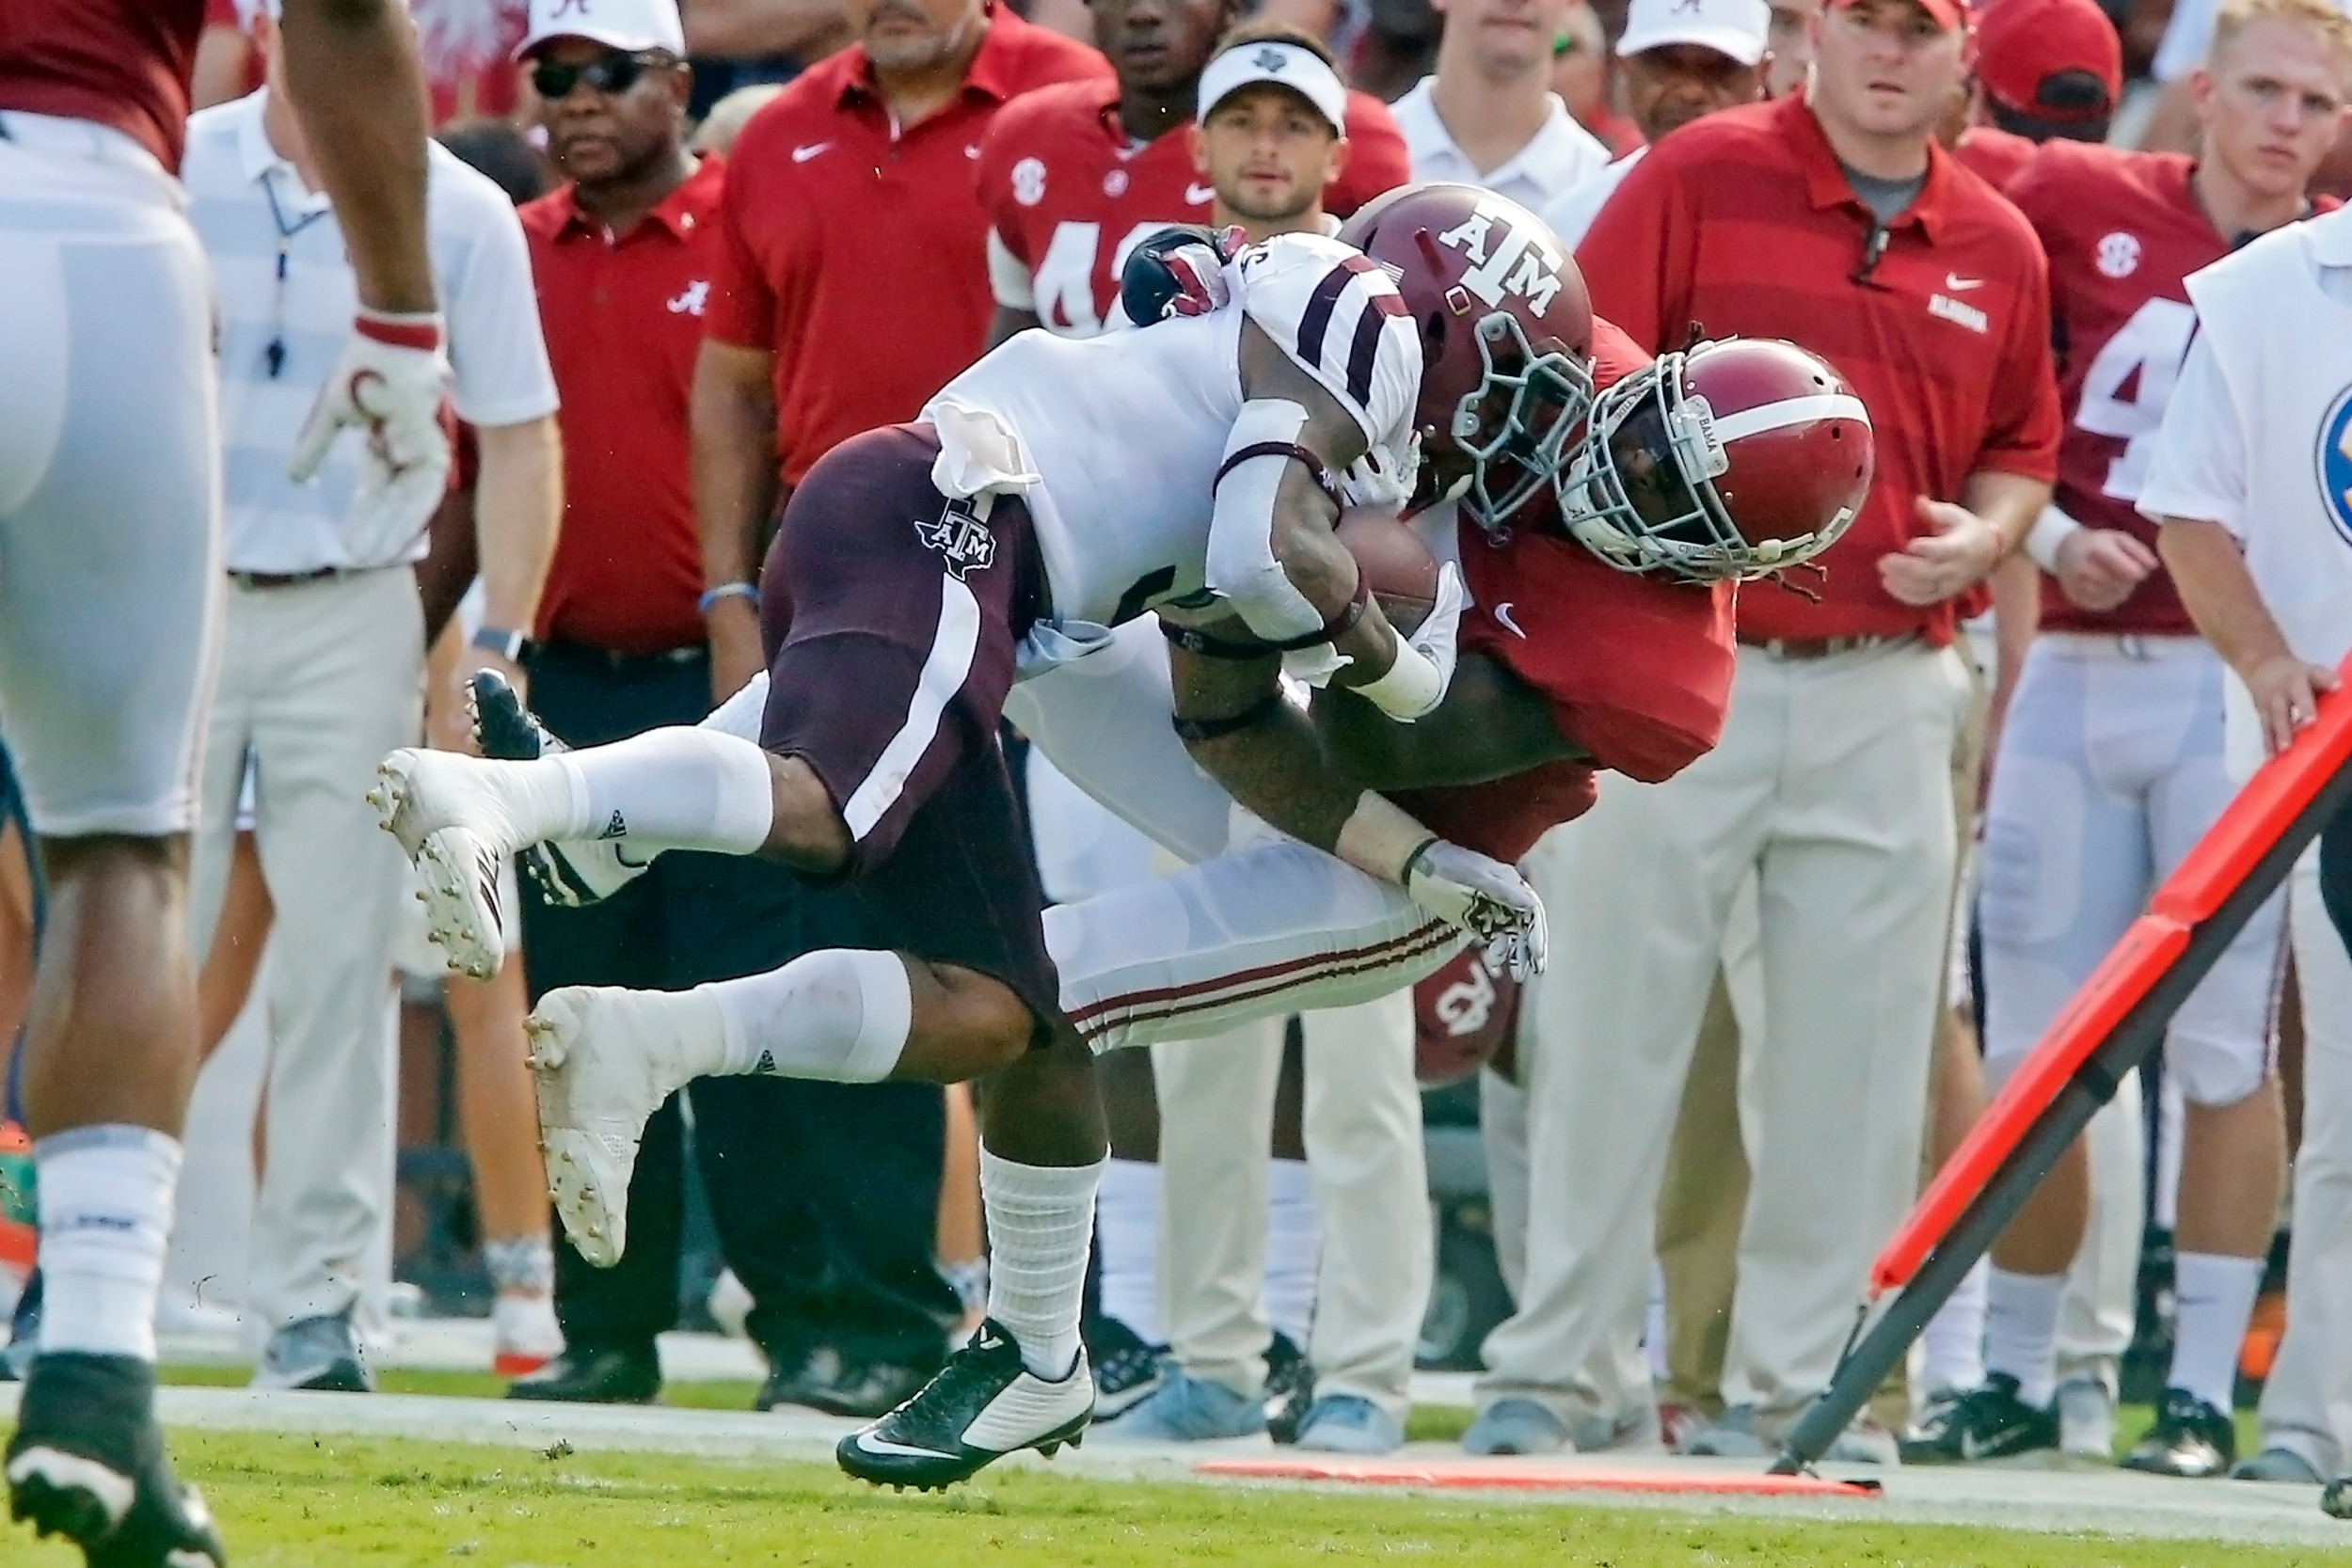 Alabama Crimson Tide defensive back Shyheim Carter (5) puts a hard hit on Texas A&M Aggies running back Trayveon Williams (5) during the game between the Texas A&M Aggies and the University of Alabama Crimson Tide at Bryant-Denny Stadium.  Jason Clark / Daily Mountain Eagle